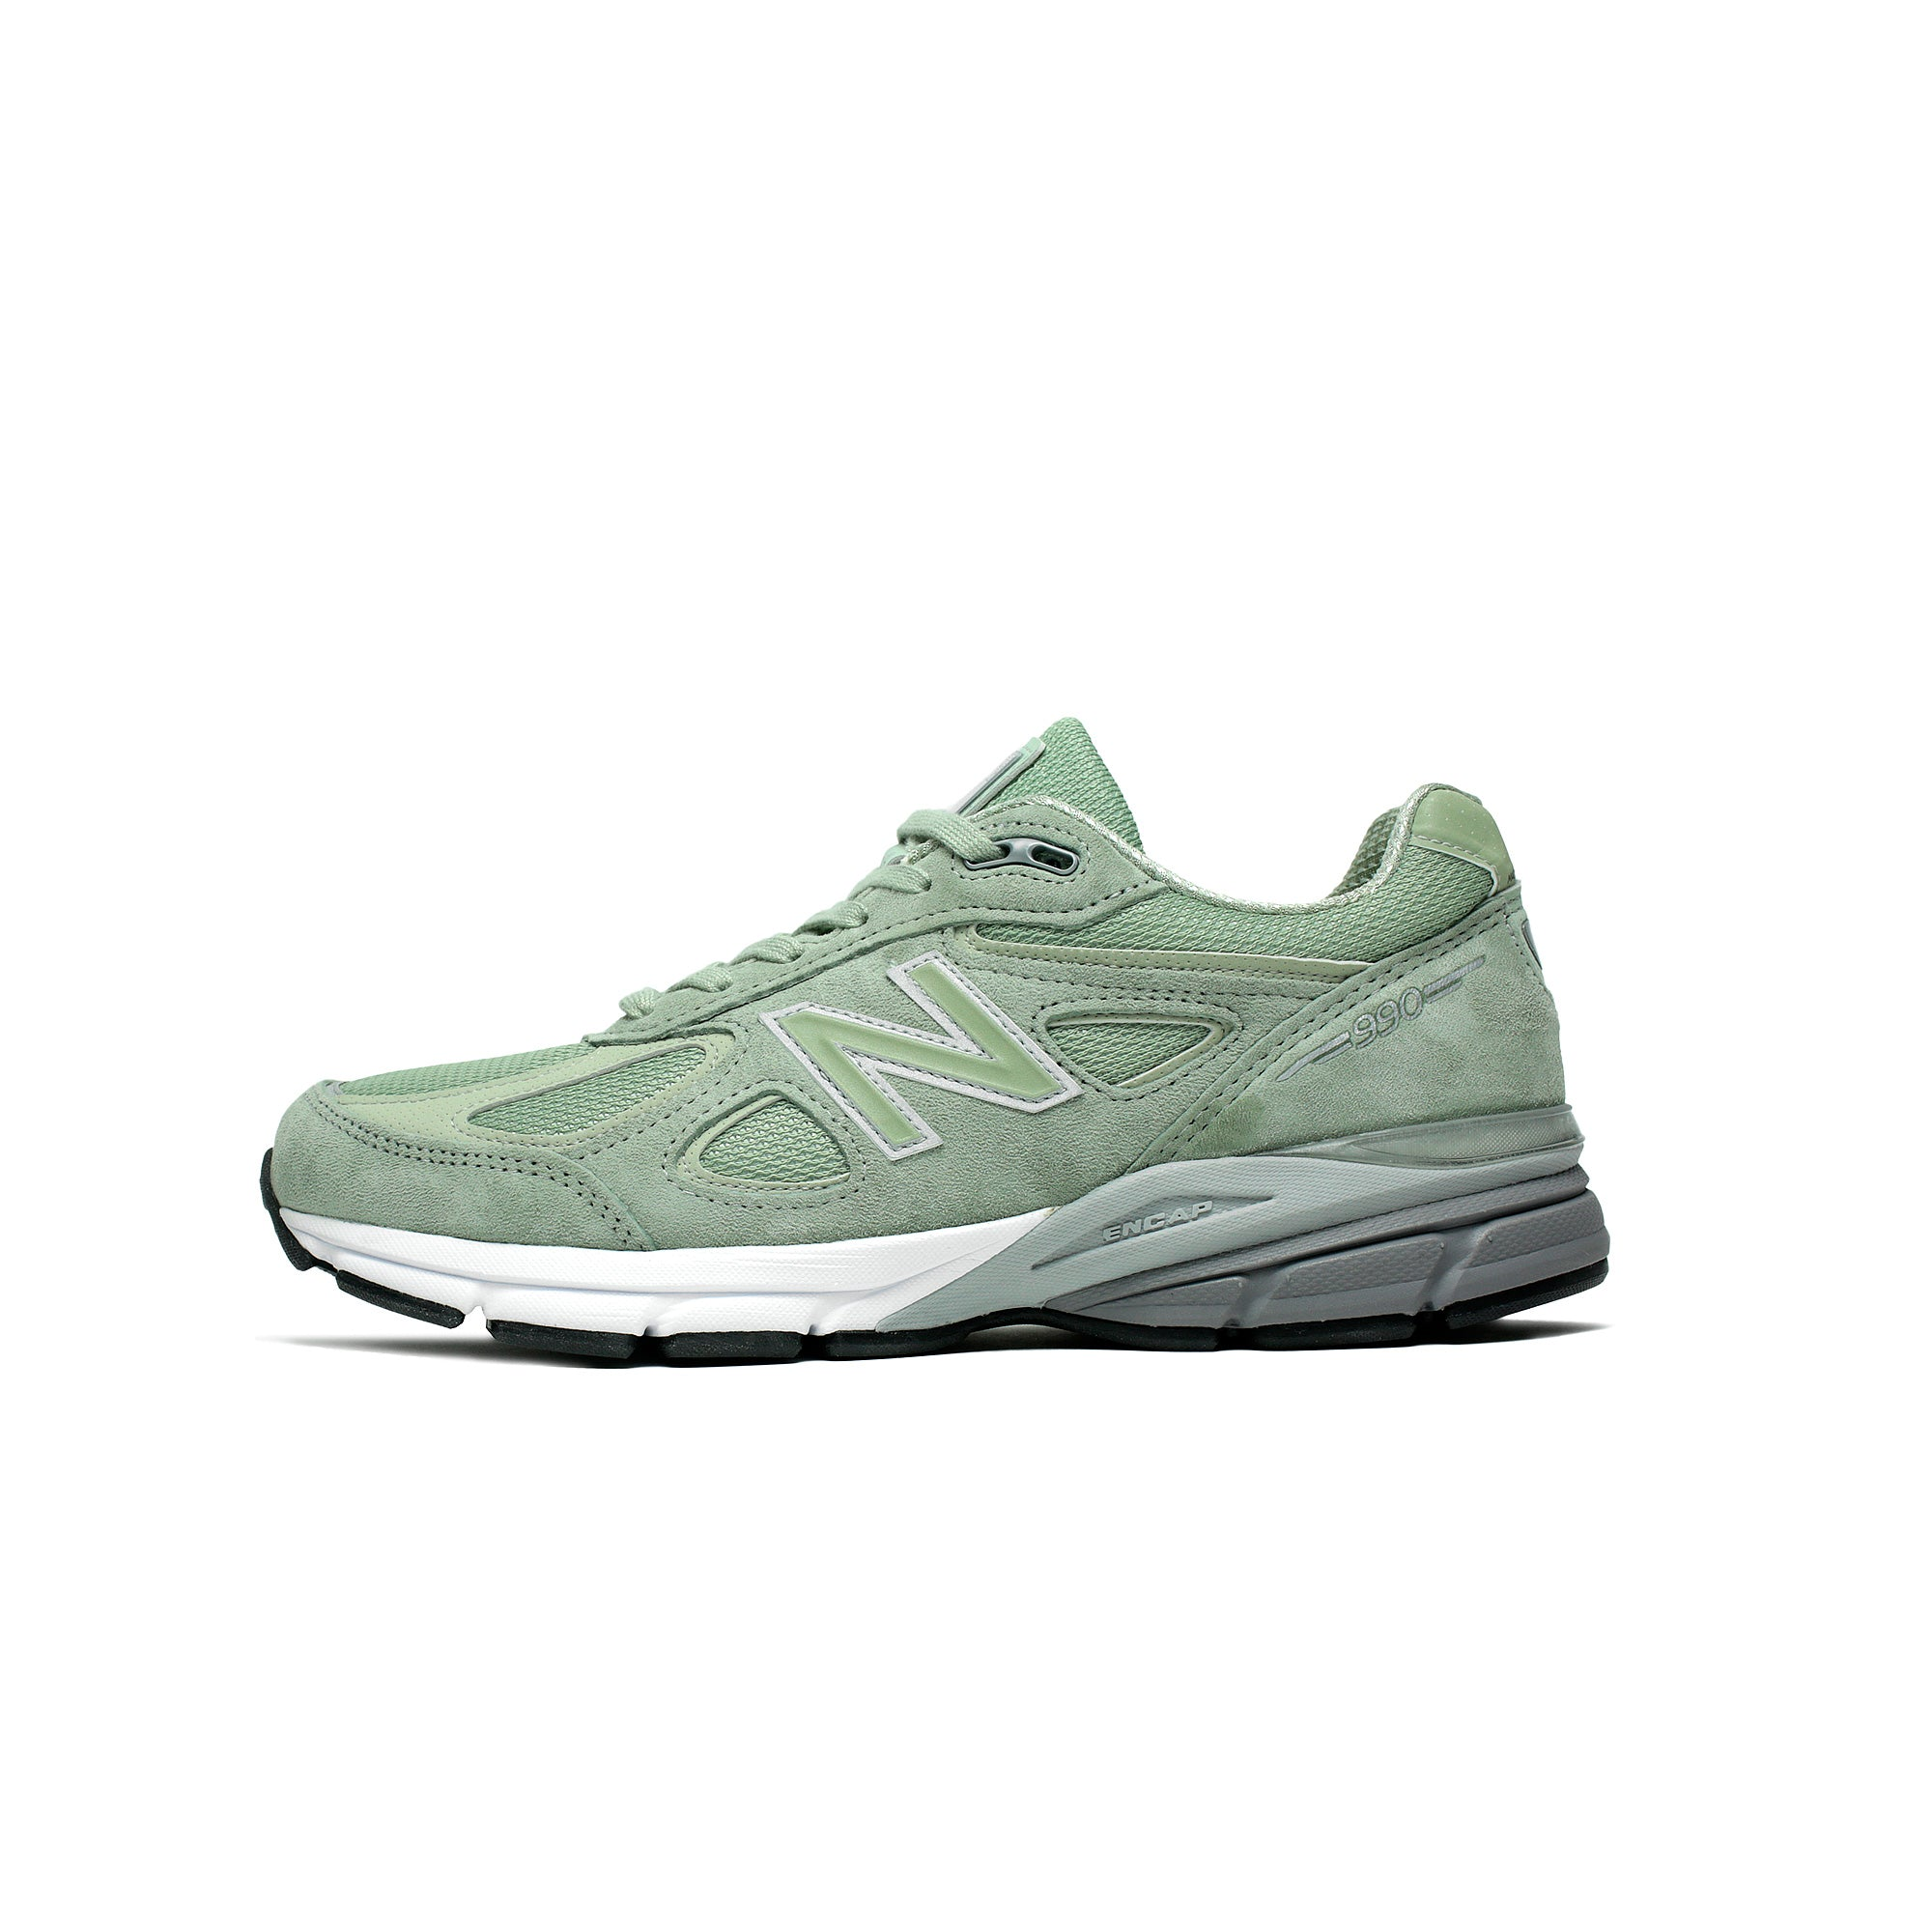 new style f550f 1aae0 ... New Balance 990 Made in USA M990SM4 ...